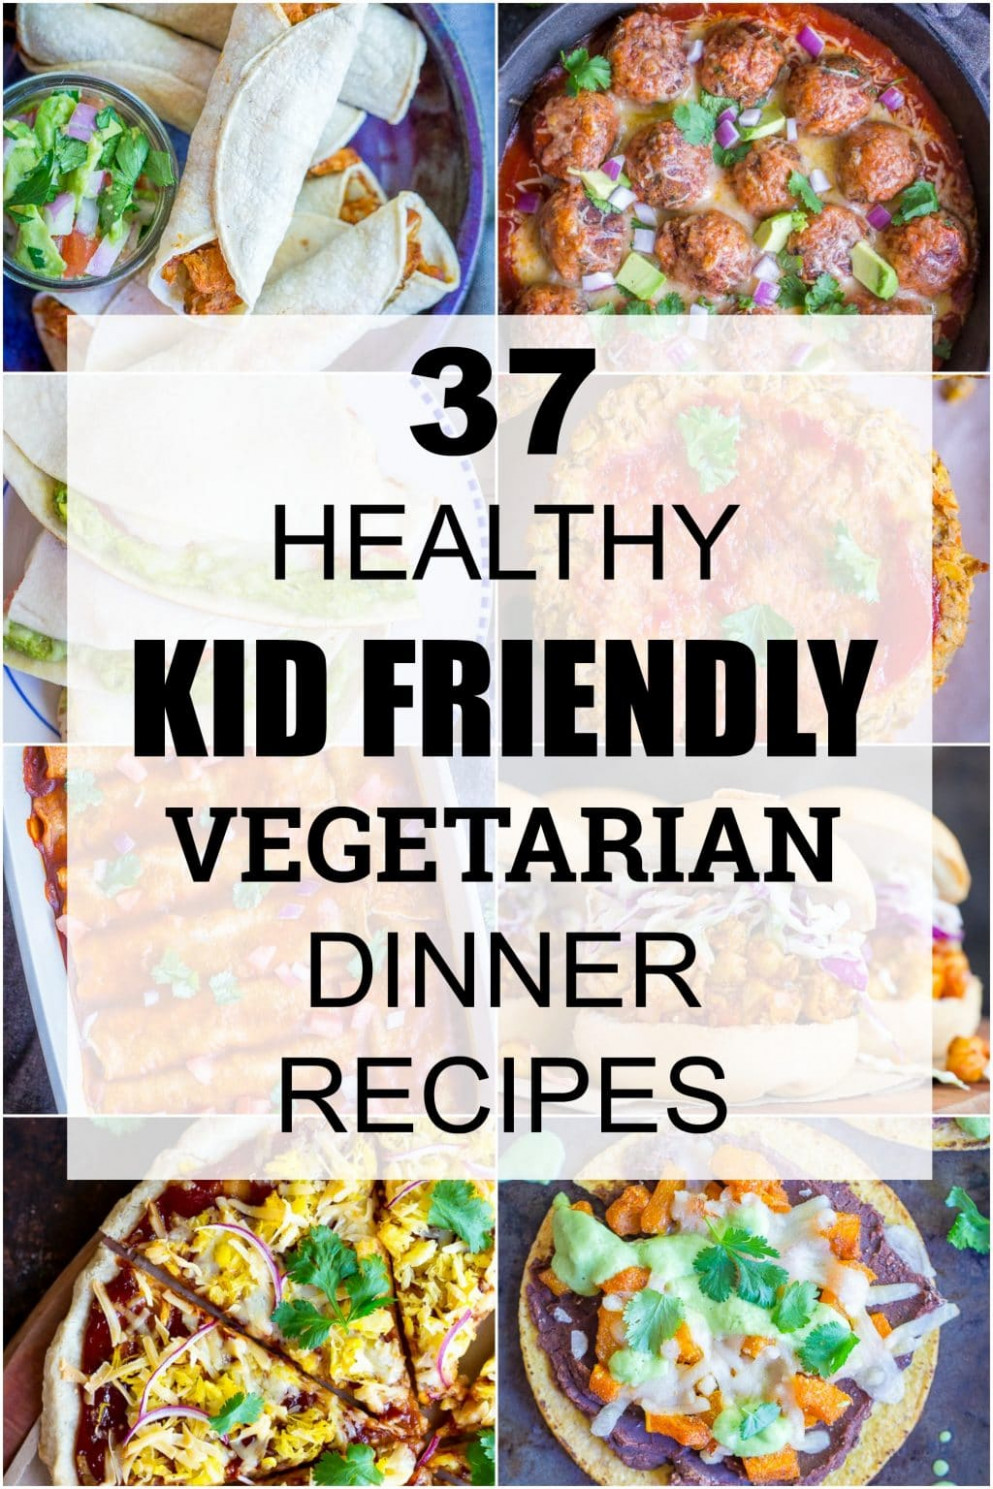 14 Healthy Kid Friendly Vegetarian Dinner Recipes - She ..